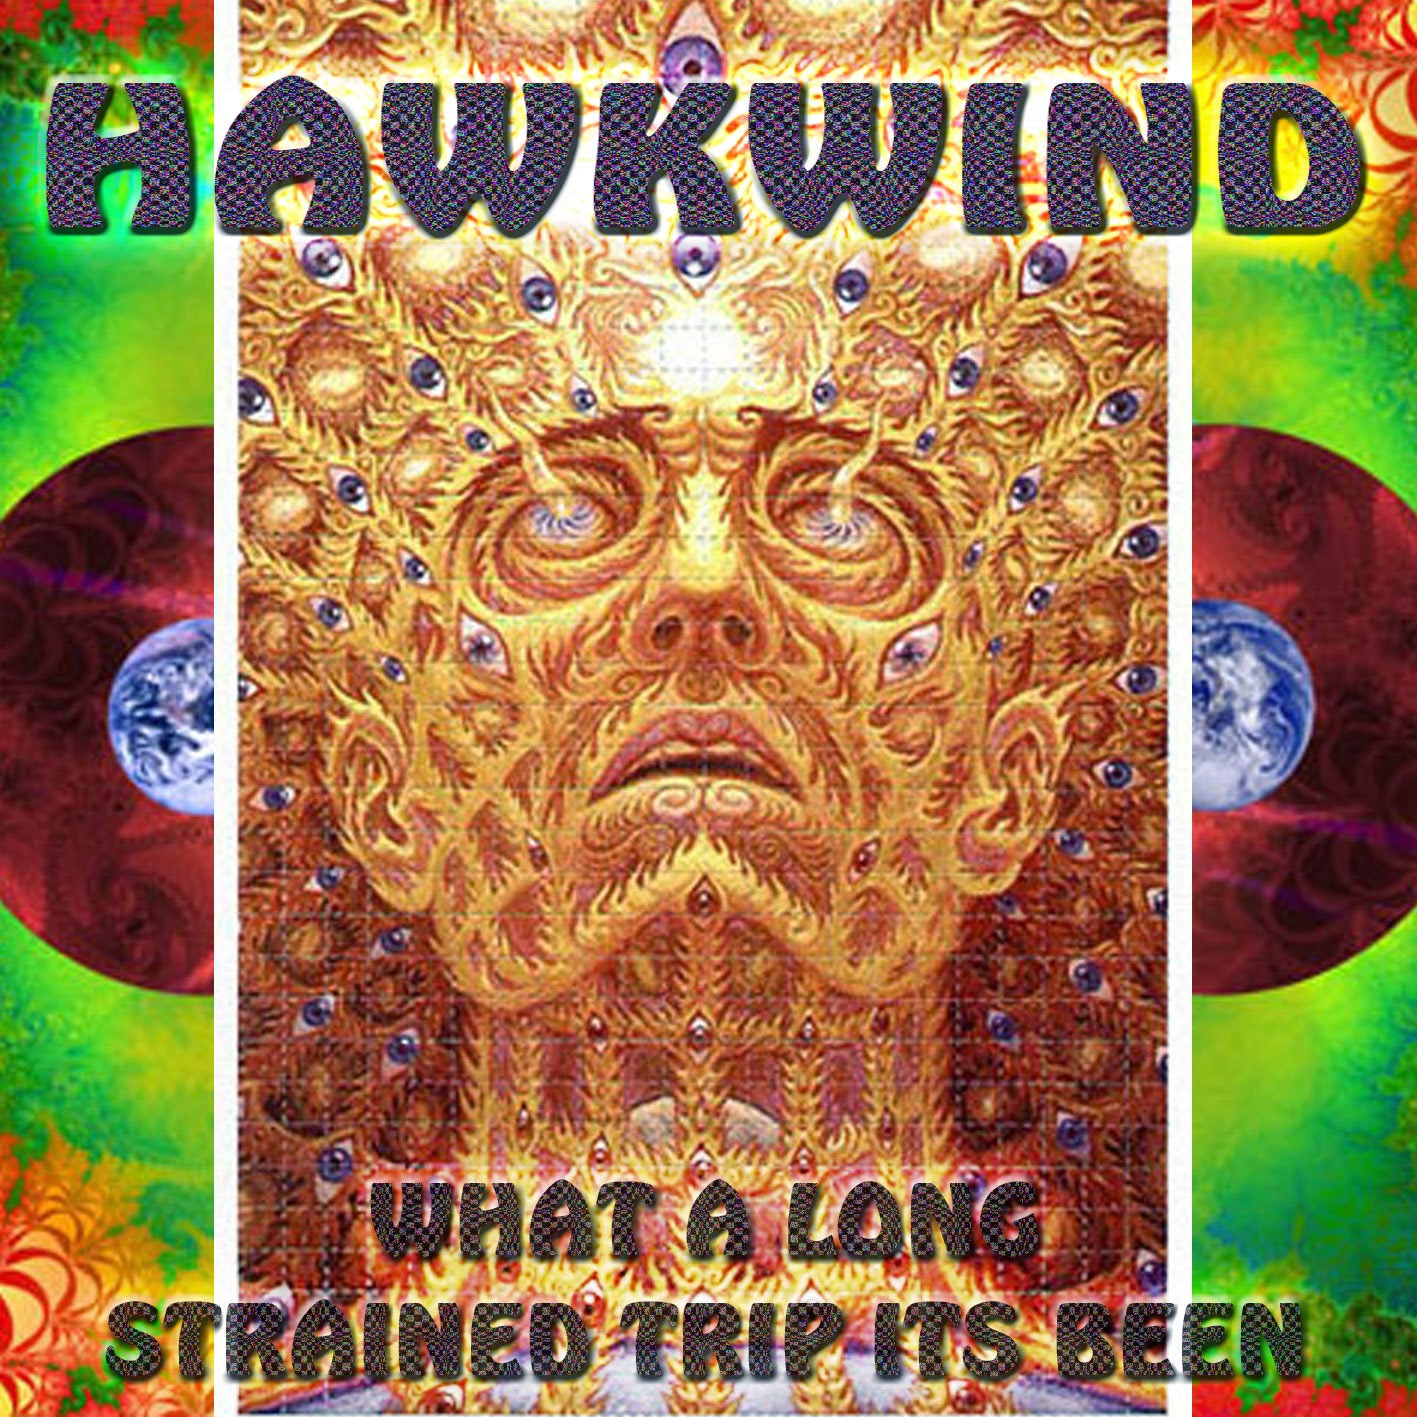 Hawkwind - Live, Demos and Sessions